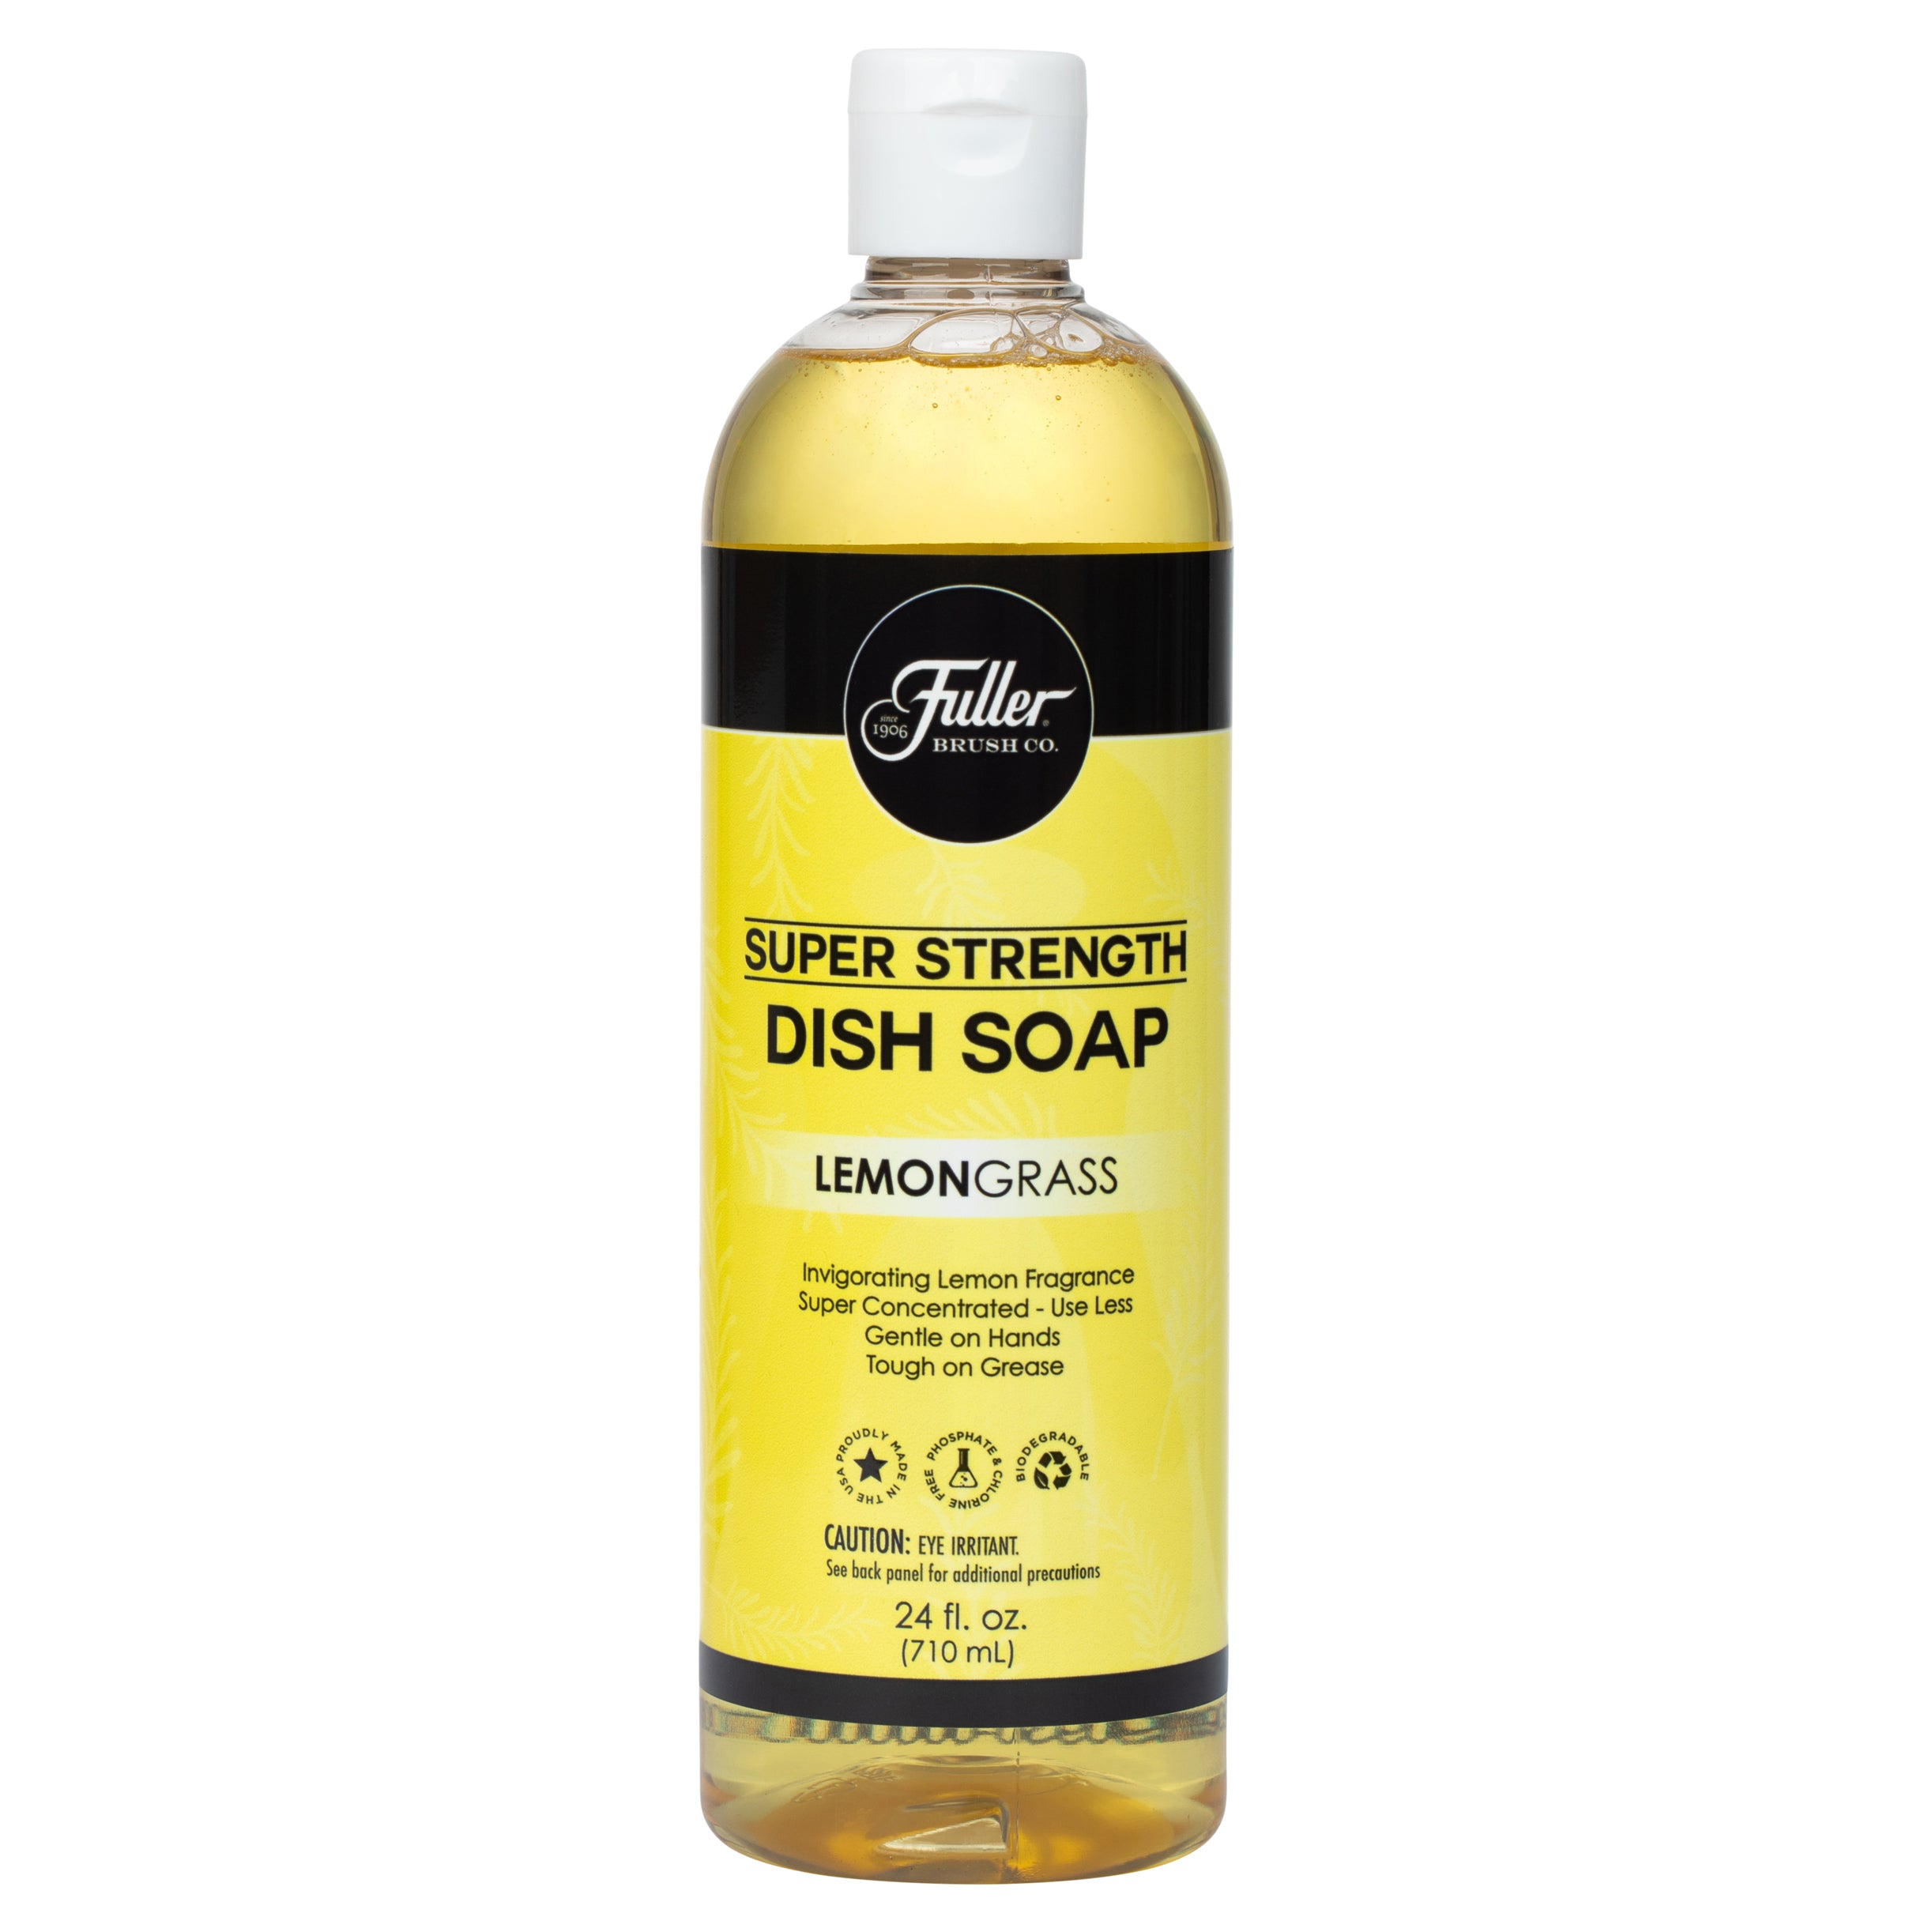 Dish Soap Super Strength – Refreshing Lemongrass Scent